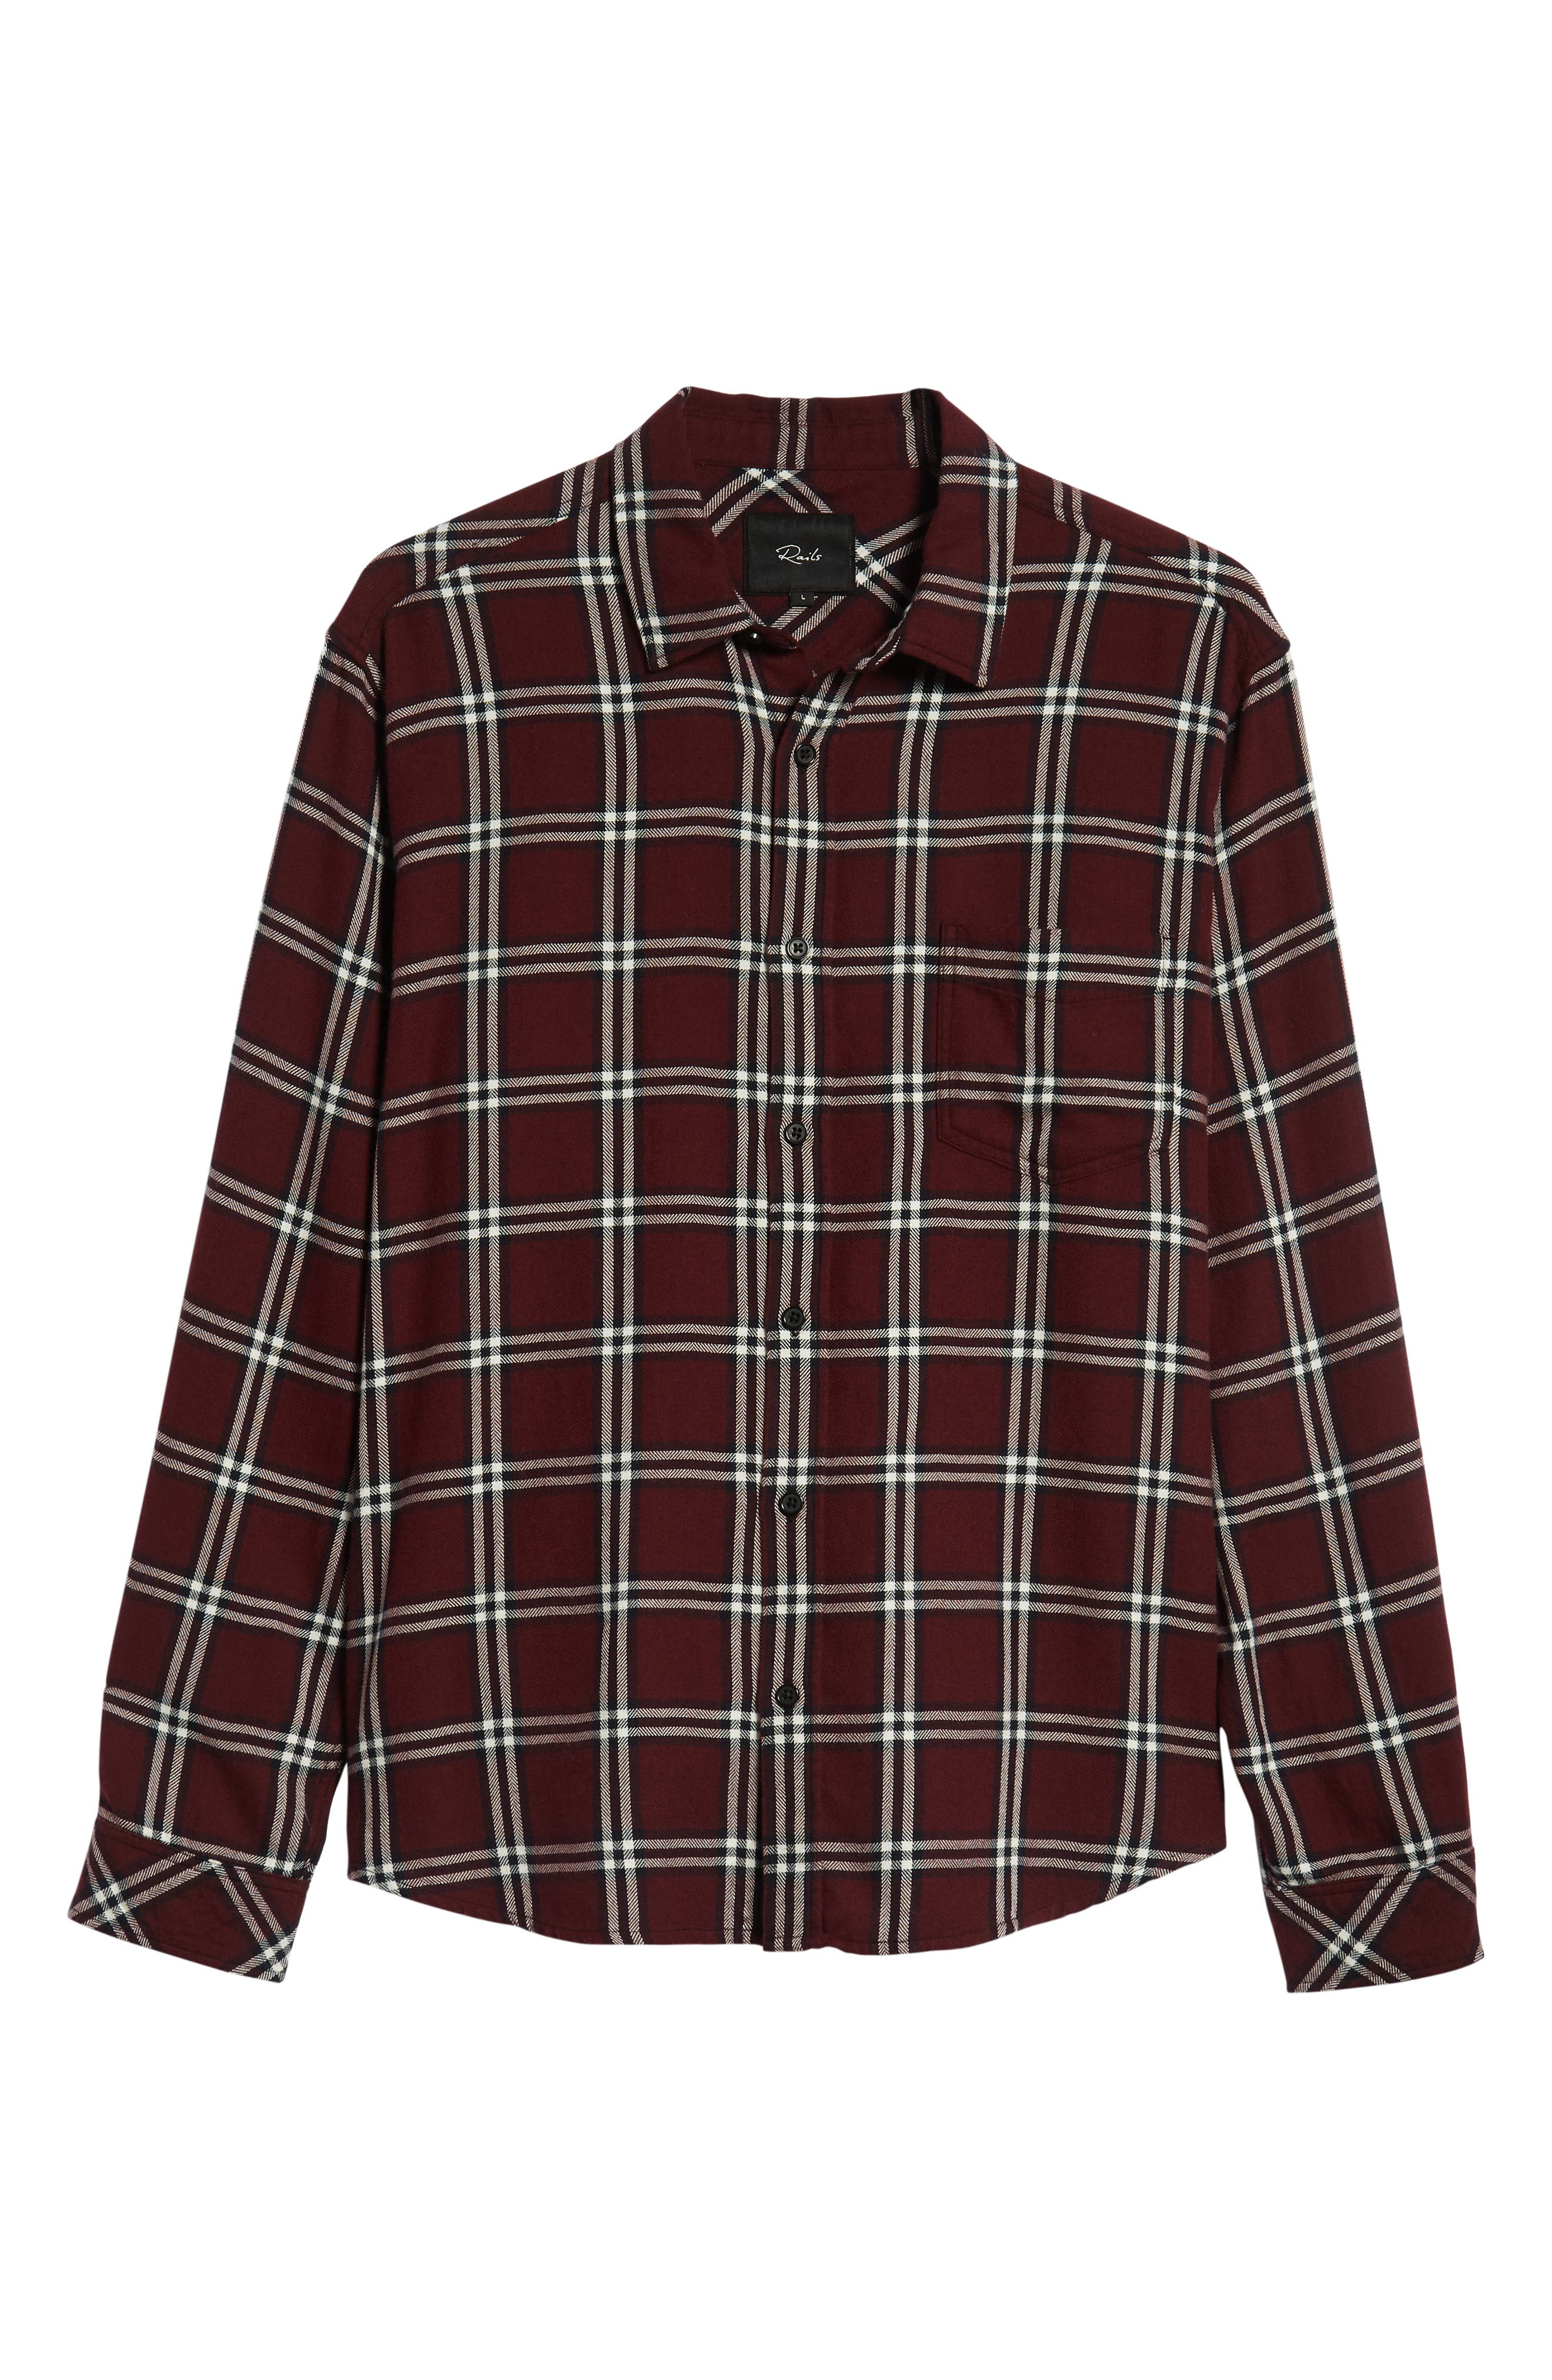 Lennox Regular Fit Plaid Sport Shirt,                             Alternate thumbnail 5, color,                             001